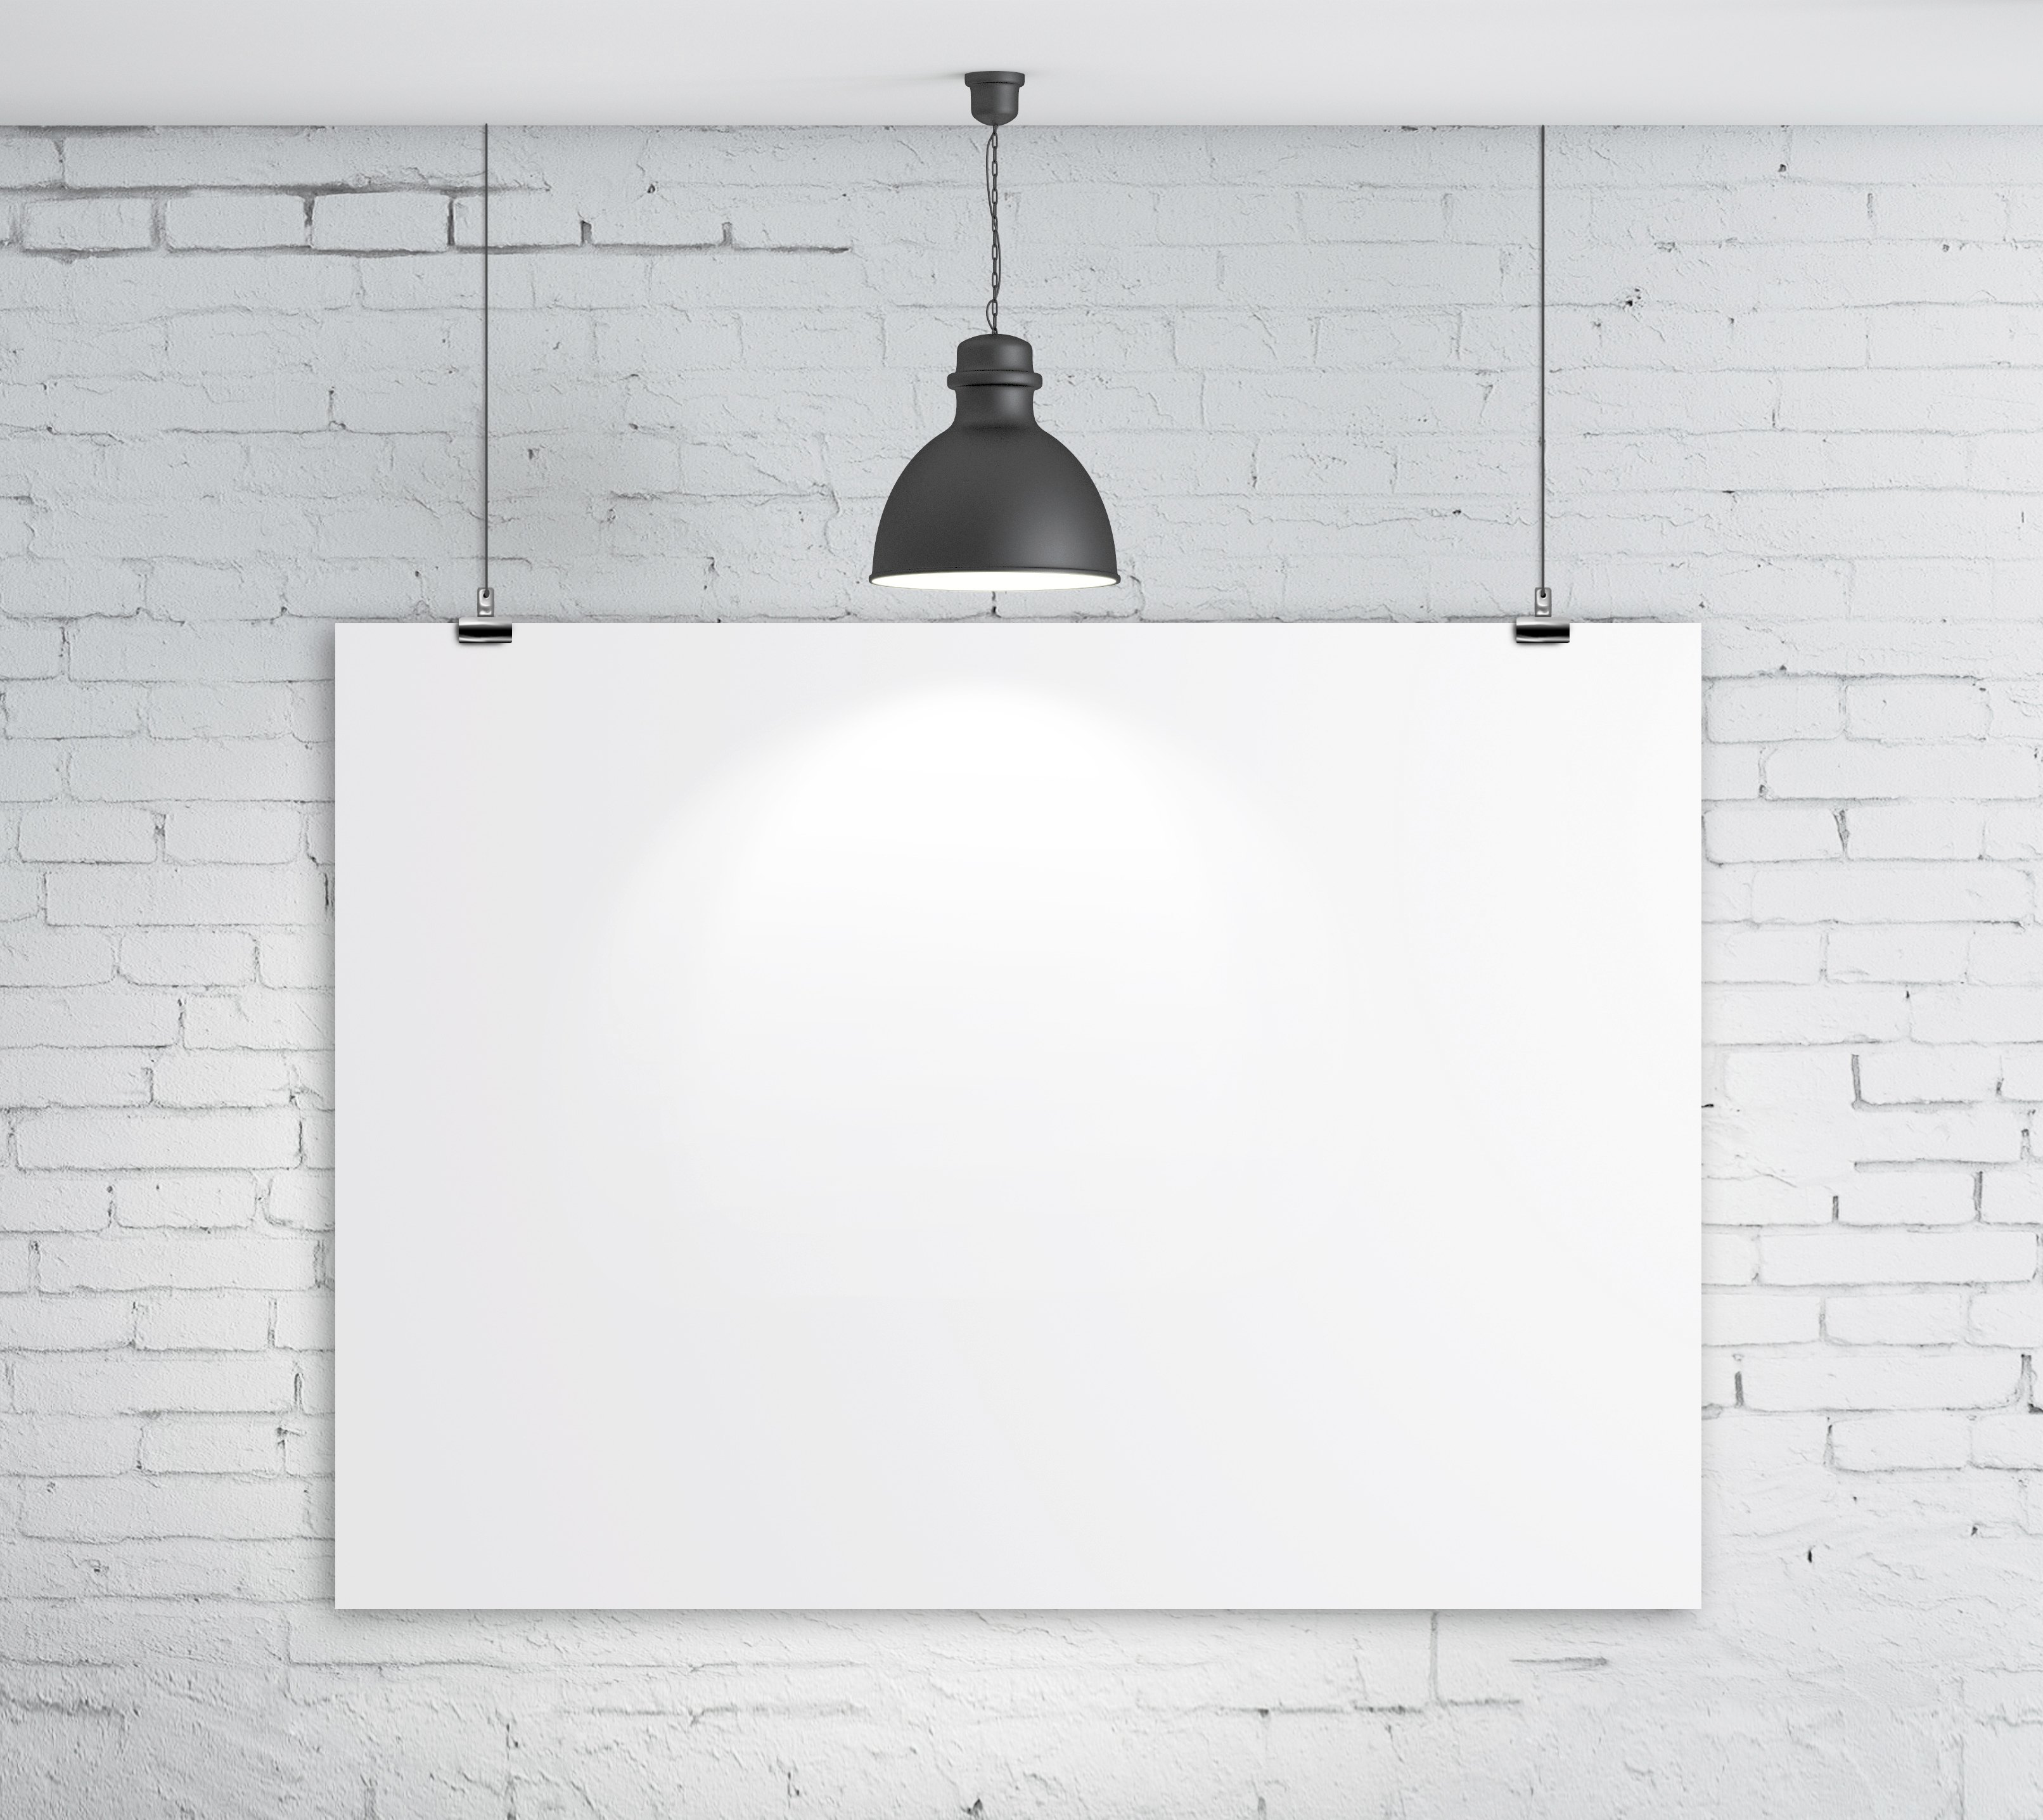 What is a standard size poster board